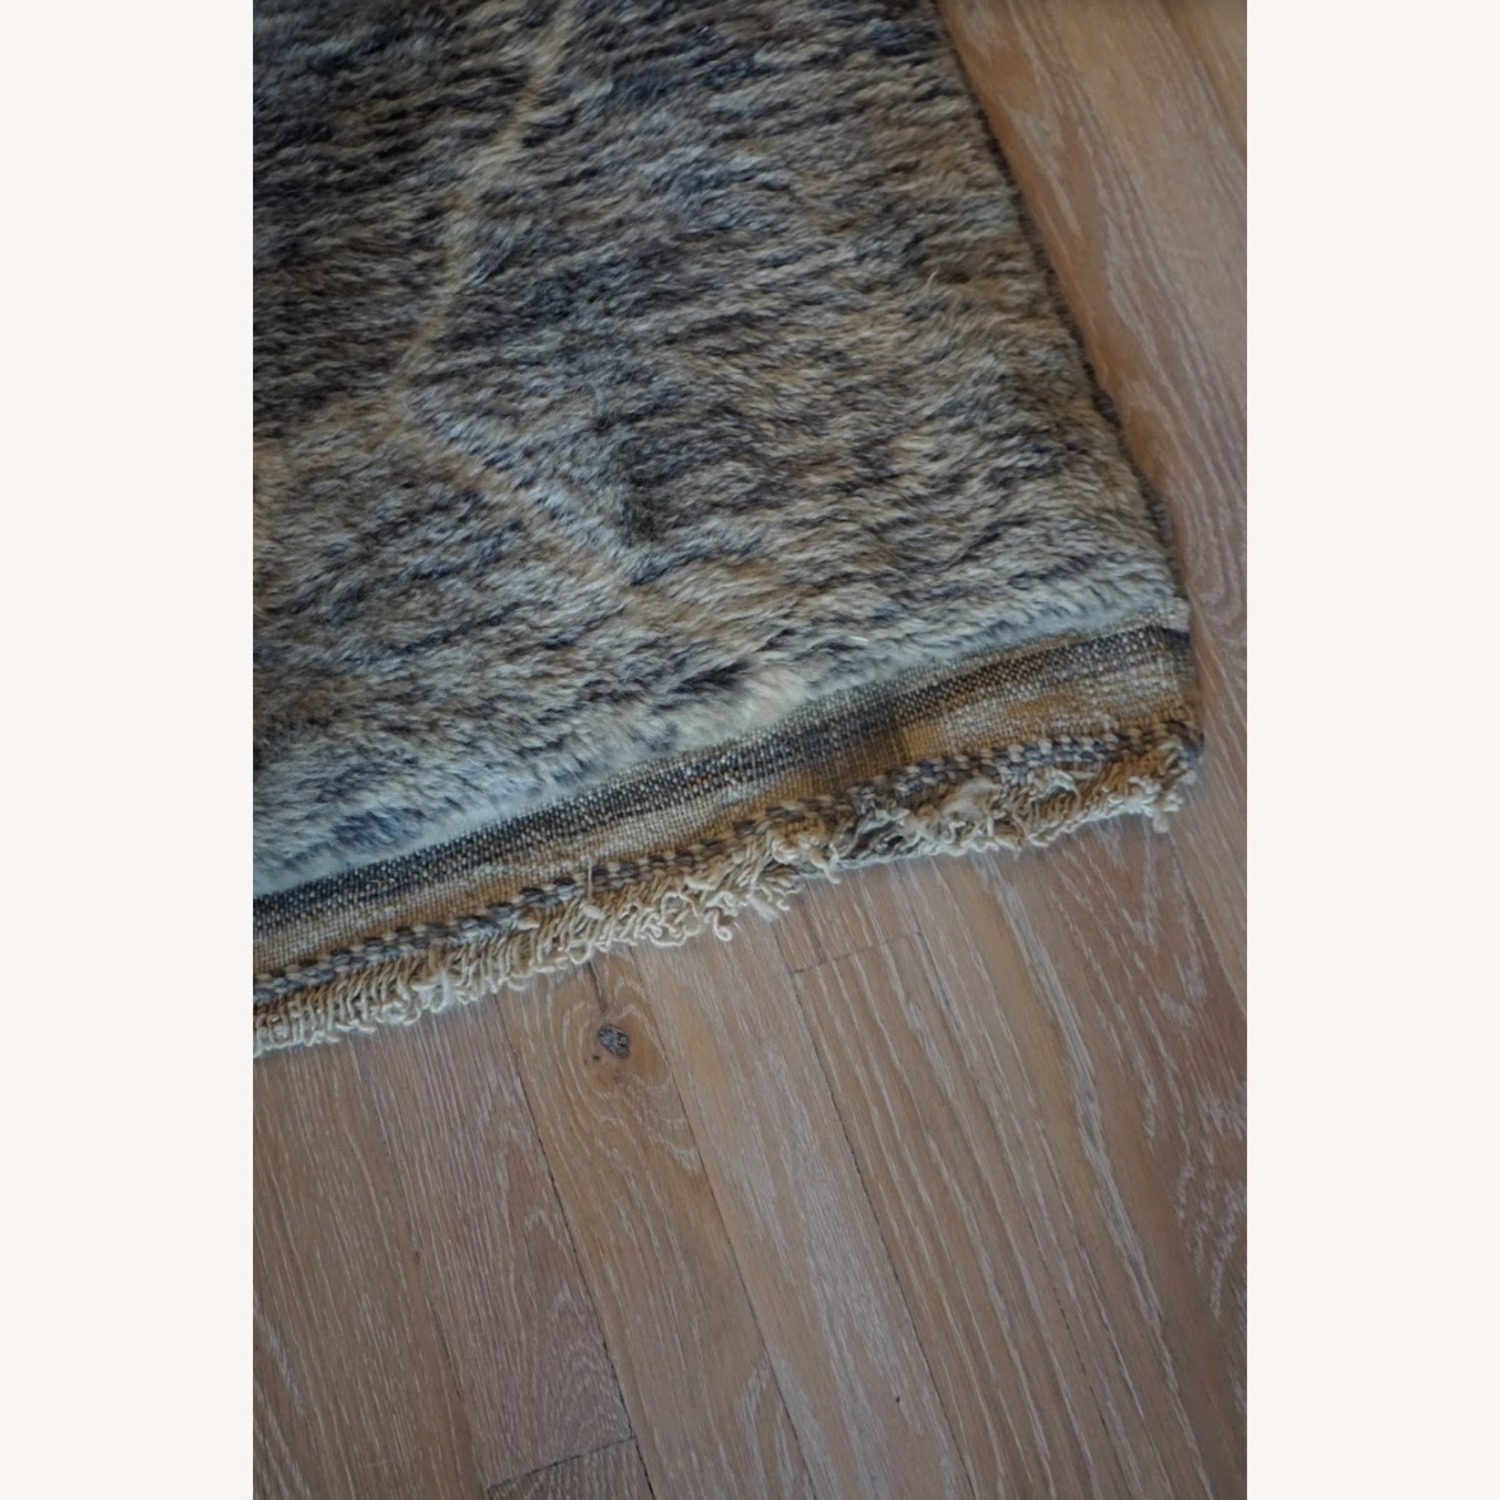 ABC Carpet and Home Beni Ourain Moroccan Rug - image-2